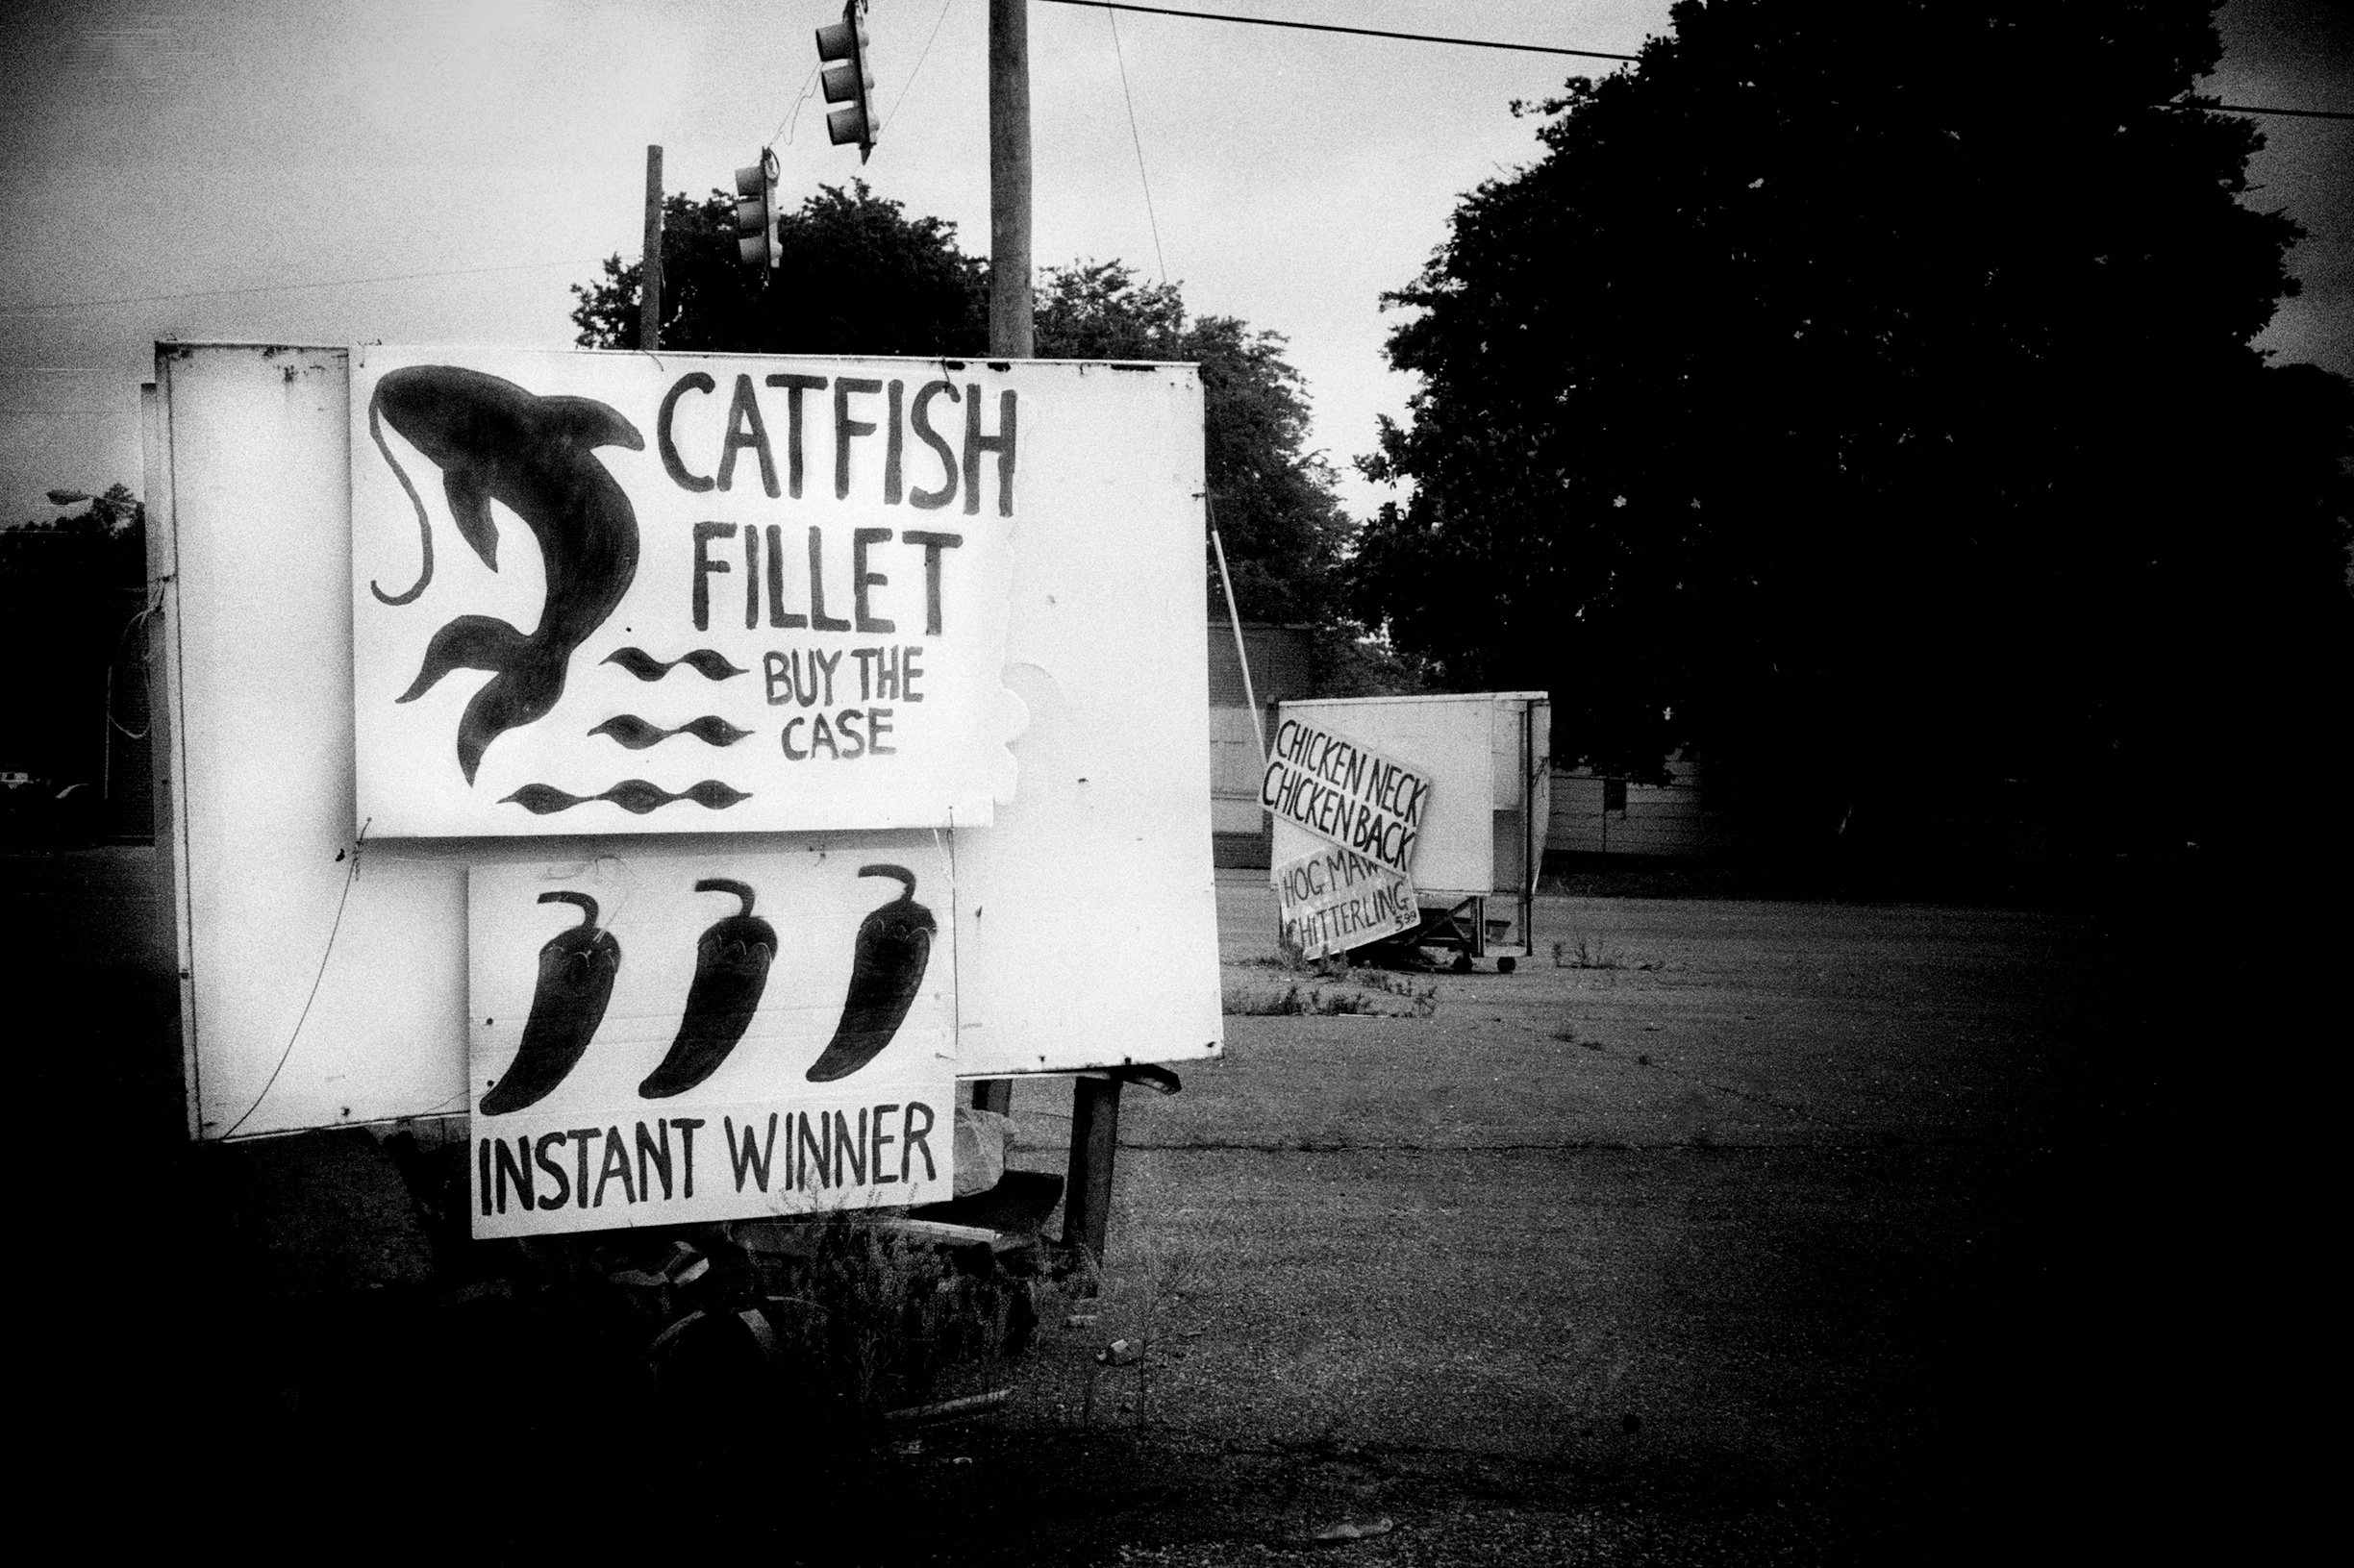 Catfish Fillet